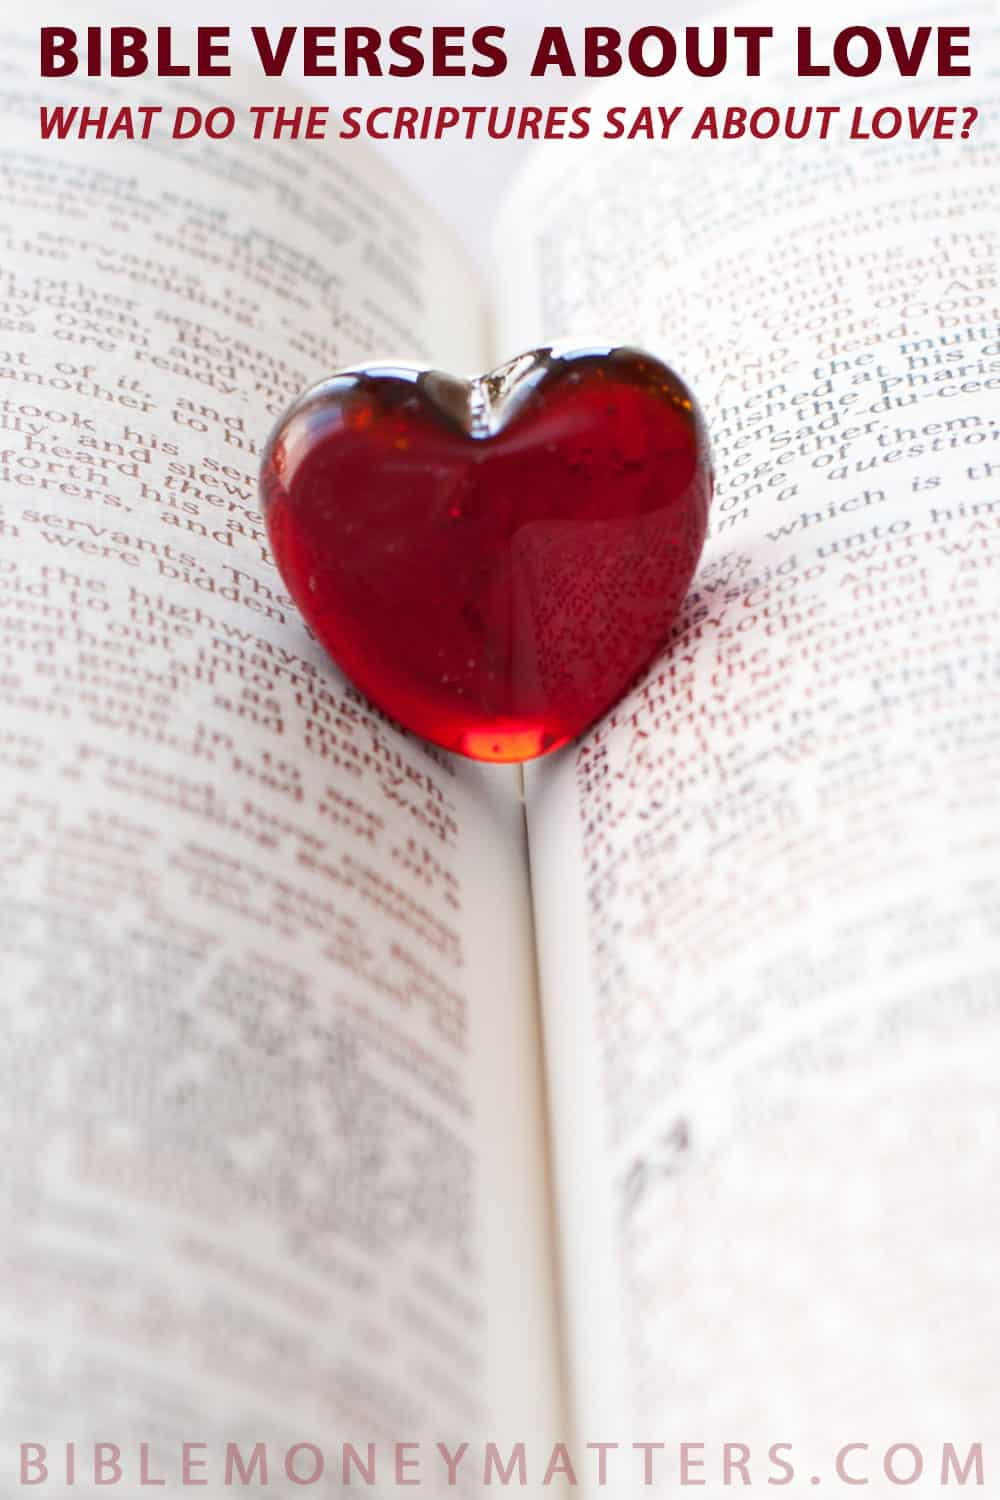 Bible Verses About Love: What Do The Scriptures Say About Love?